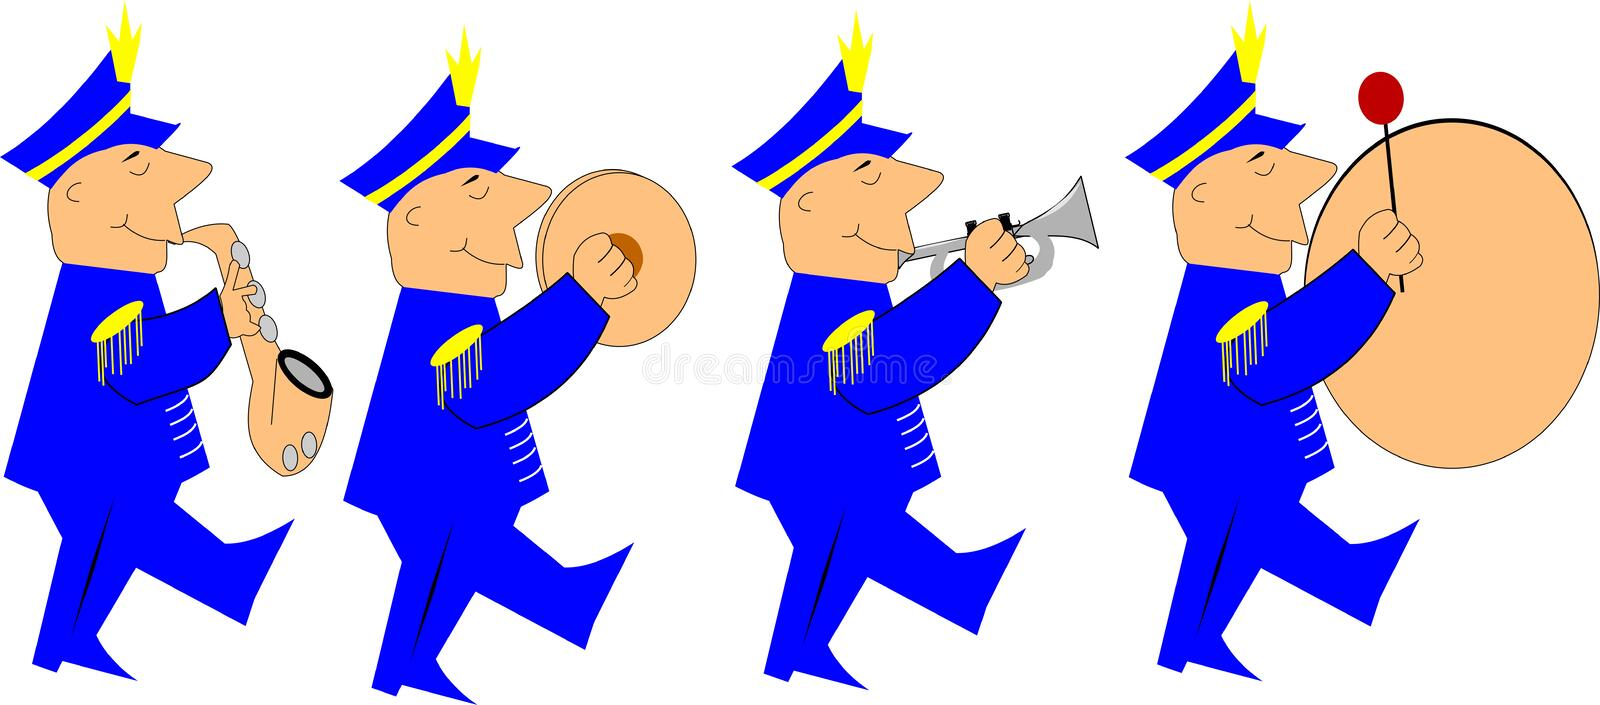 Marching band royalty free illustration